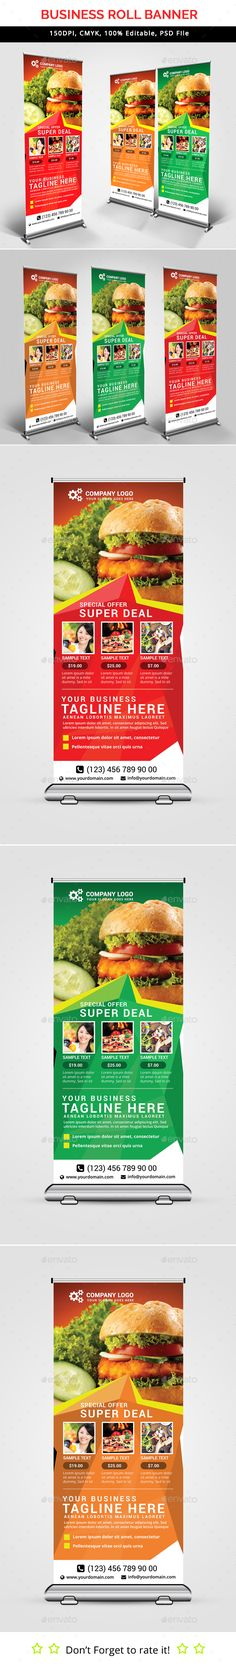 Fast Food Roll-Up Banner Template PSD. Download here: http://graphicriver.net/item/fast-food-roll-up-banner-v35/15596161?ref=ksioks